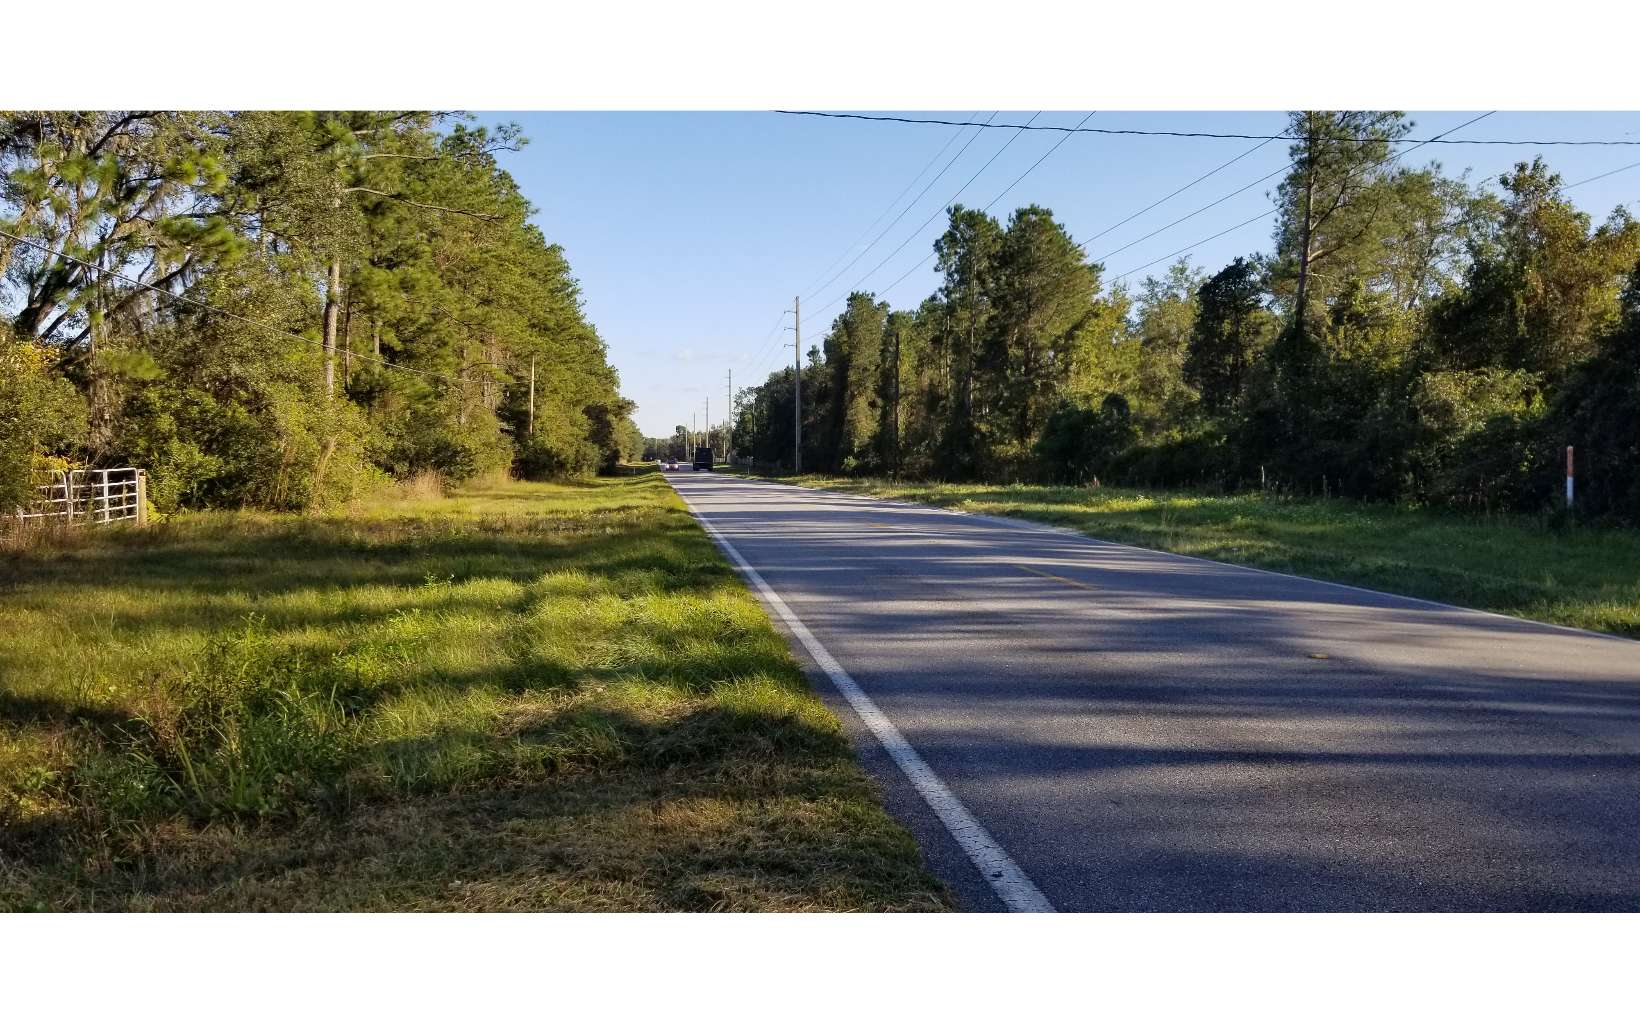 Rare opportunity to own 292.5 acres just outside the city limits of Lake City that backs up to Columbia County's new proposed flat field recreational complex. This is a desirable and growing area of the county with new development ongoing at Woodborough North next door. Extensive frontage on NW Lake Jeffery Road and 50' access parcel off NW Moore Road. Upland areas planted in pine plantation in 2020 and wetlands areas are natural cypress and hardwoods. A 50'x100' heavy wood frame metal enclosed barn is located on the property with 200-amp service, well, septic, security, and internet. A bald eagle nest is located in one of the cypress heads on the property along with plenty of deer and turkey. Listing includes Parcel ID's 23-3S-16-02271-003, 23-3S-16-02271-002, 24-3S-16-02275-001, 14-3S-16-02124-000, 13-3S-16-02112-000. Owner will consider dividing the property. Zoning is 131.5 acres of RSF-2 (1 dwelling per 20,000 sf) and 161 acres of RR (1 dwelling per acre). Potential of up to 447 units with a PUD. Property is located on the north side of NW Lake Jeffery Road so well and septic is permitted on smaller acreage lots.